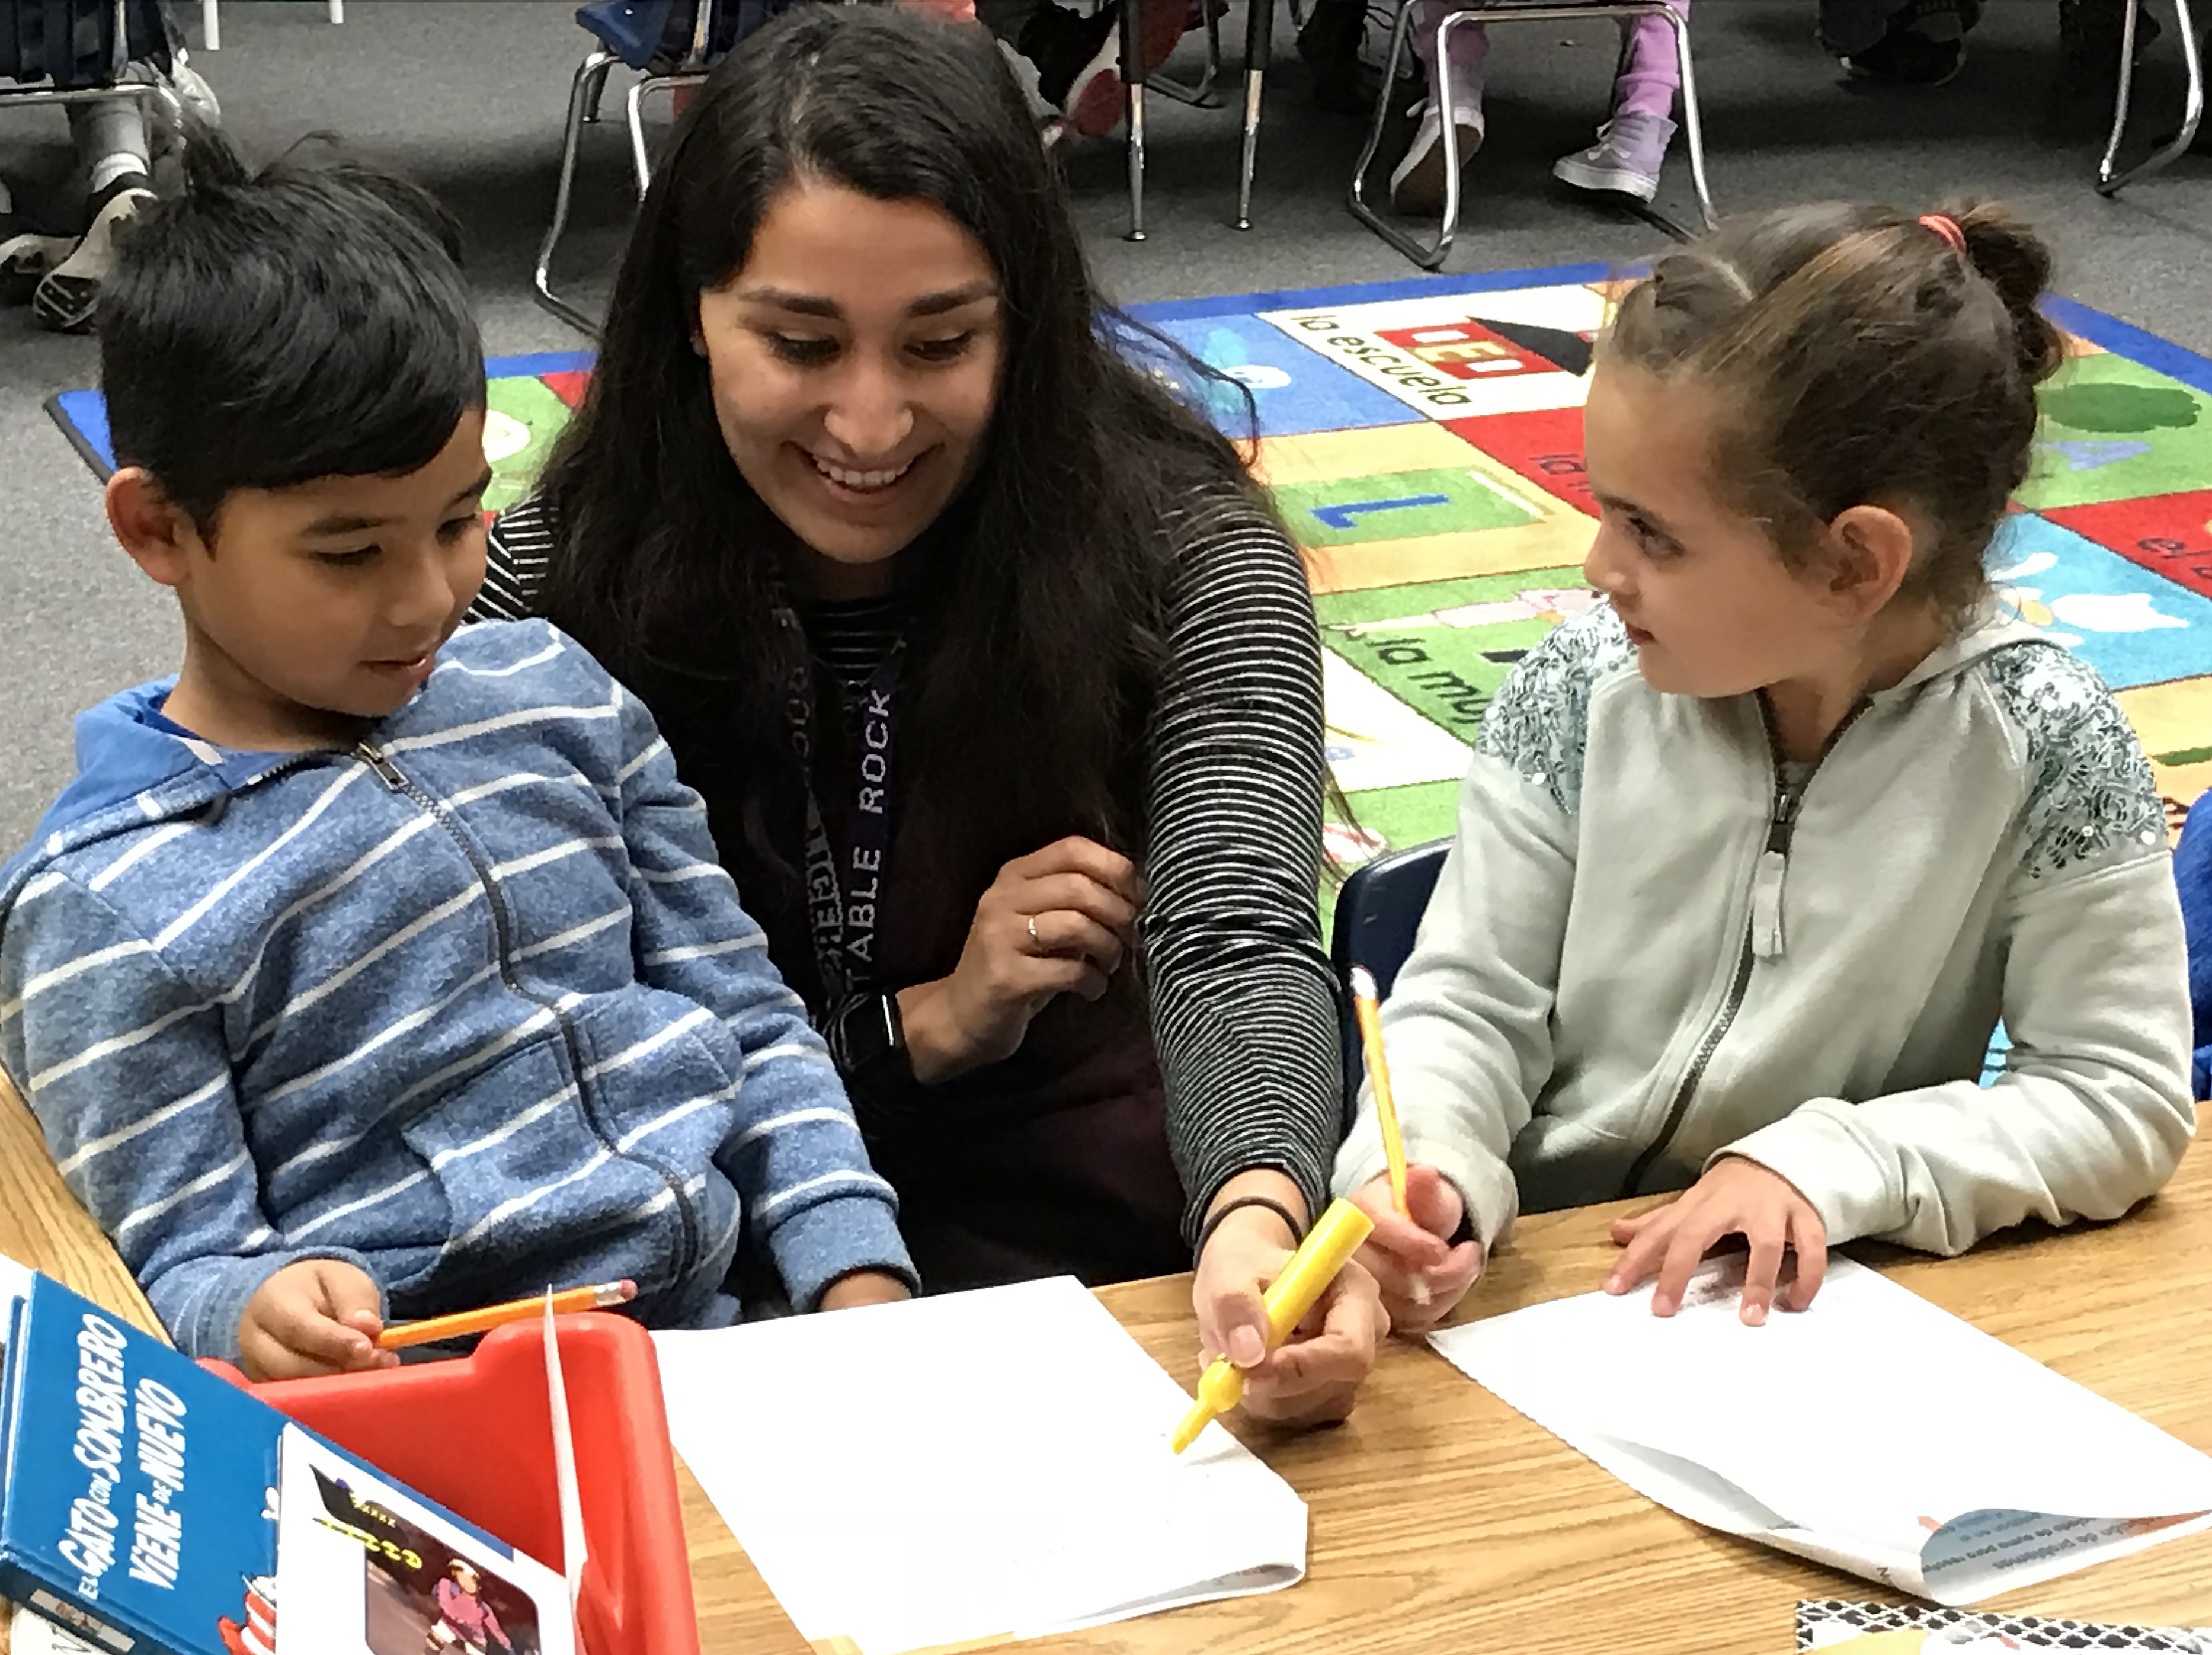 Teacher working with two young students.